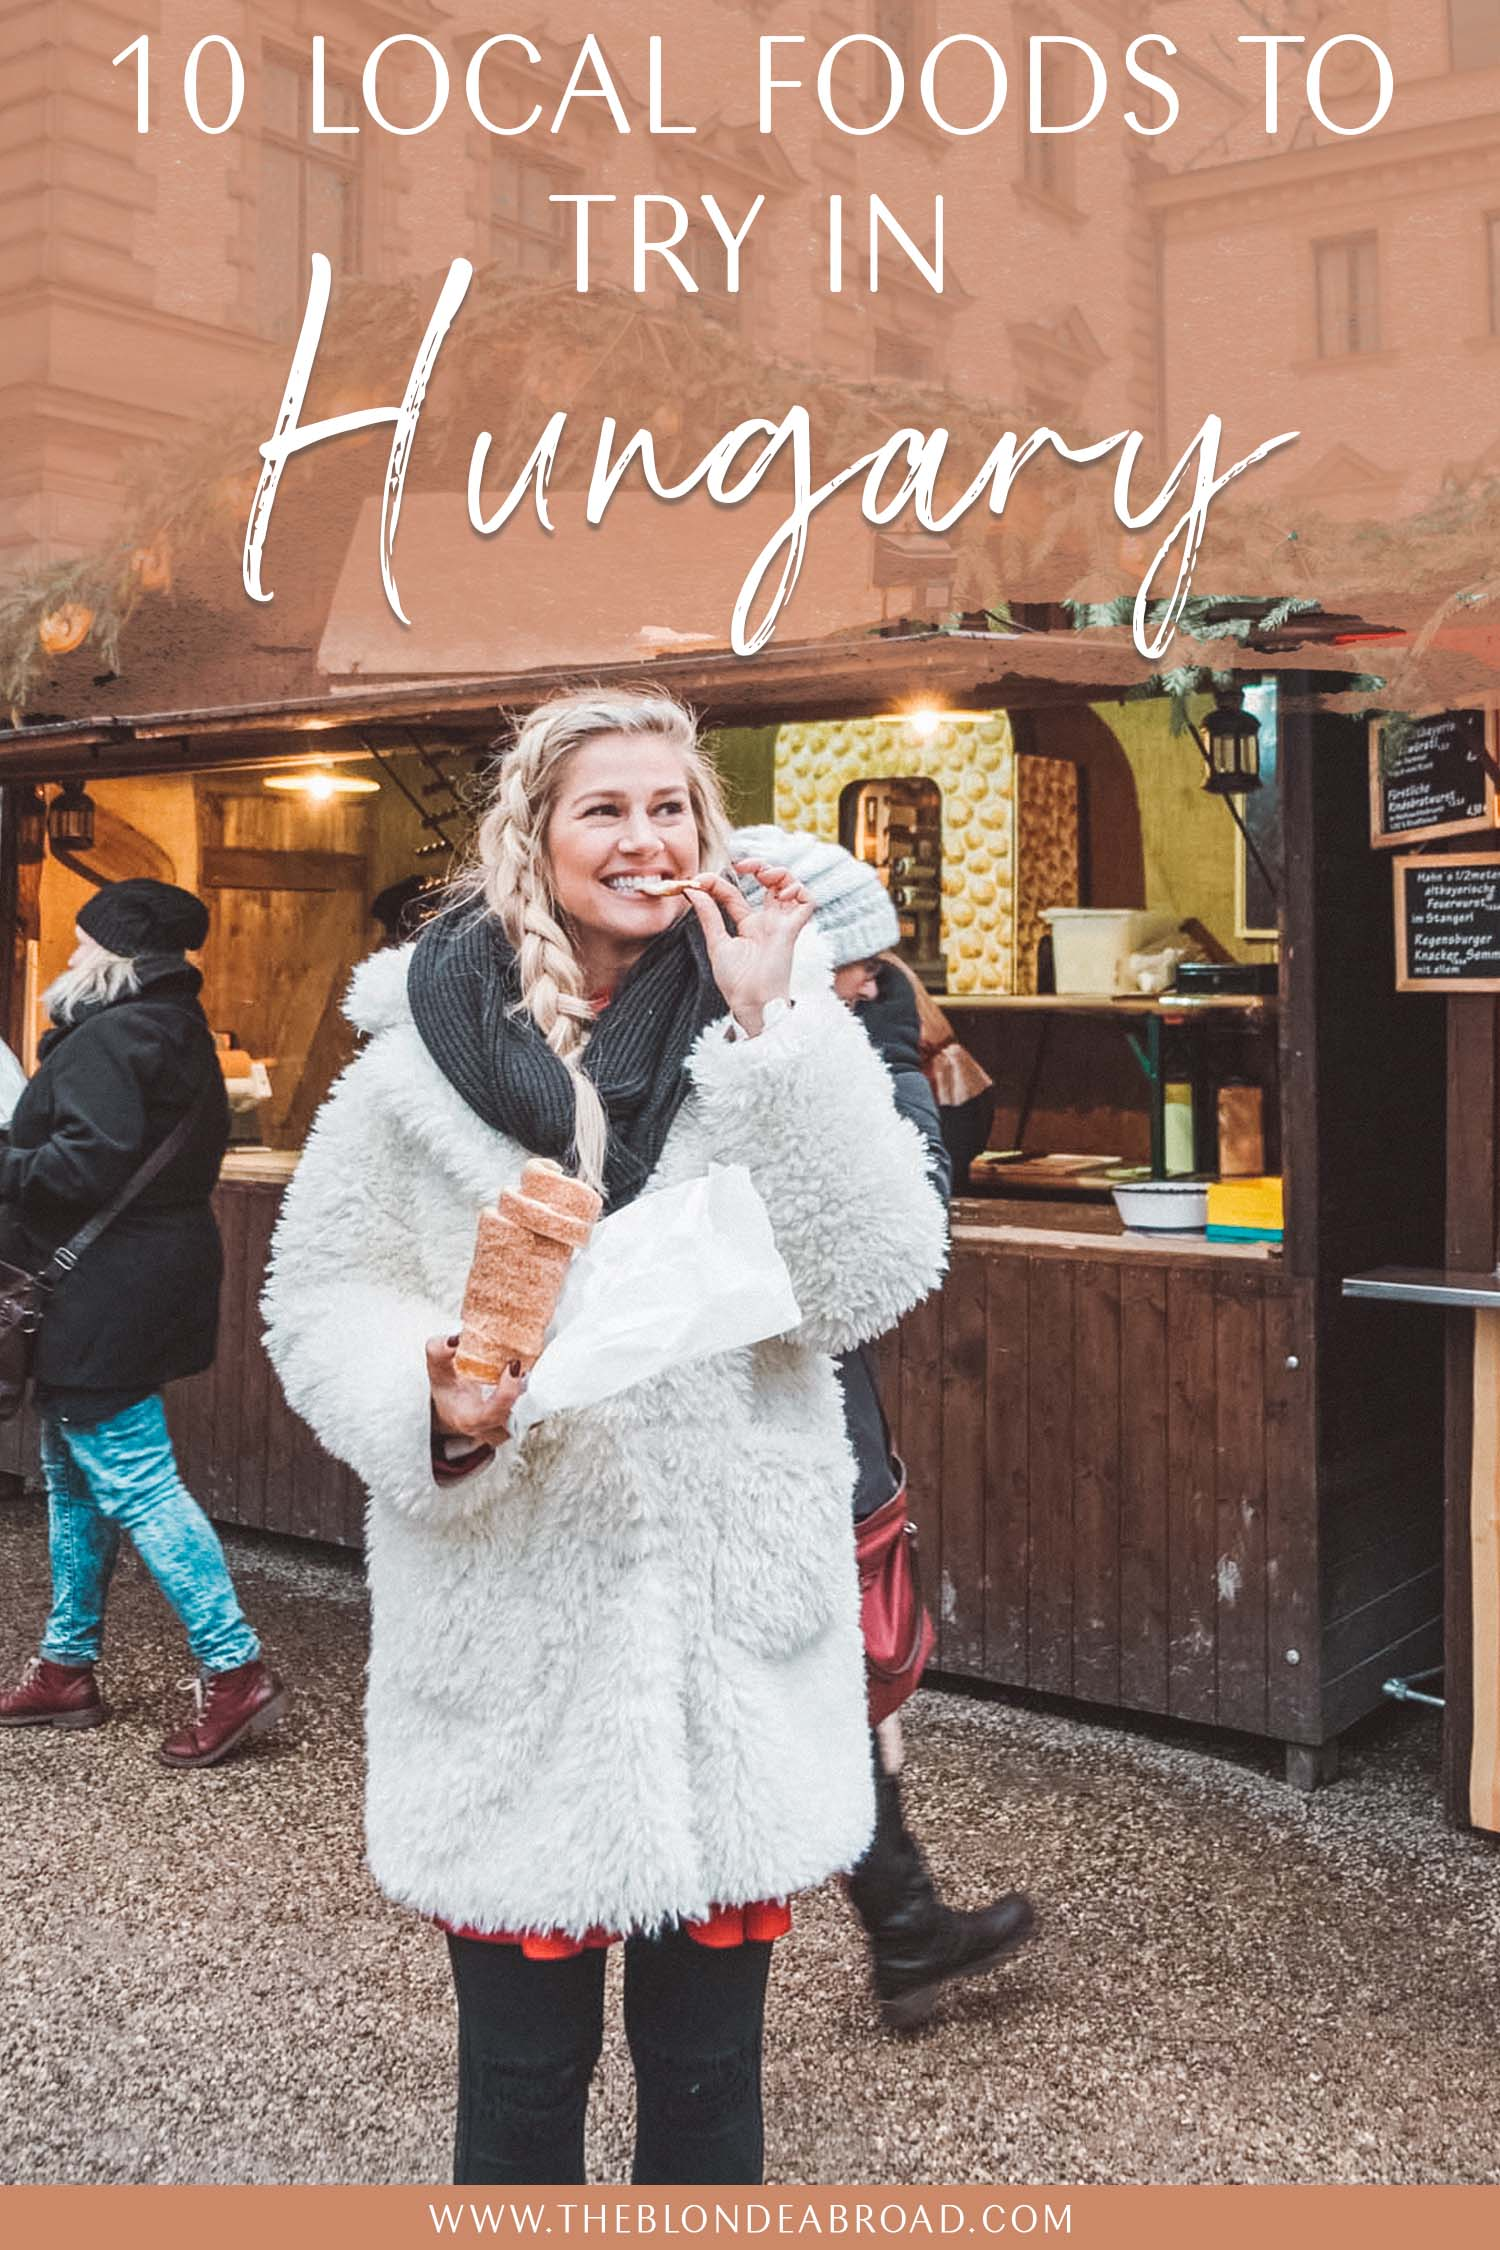 Local Foods Hungary header updated